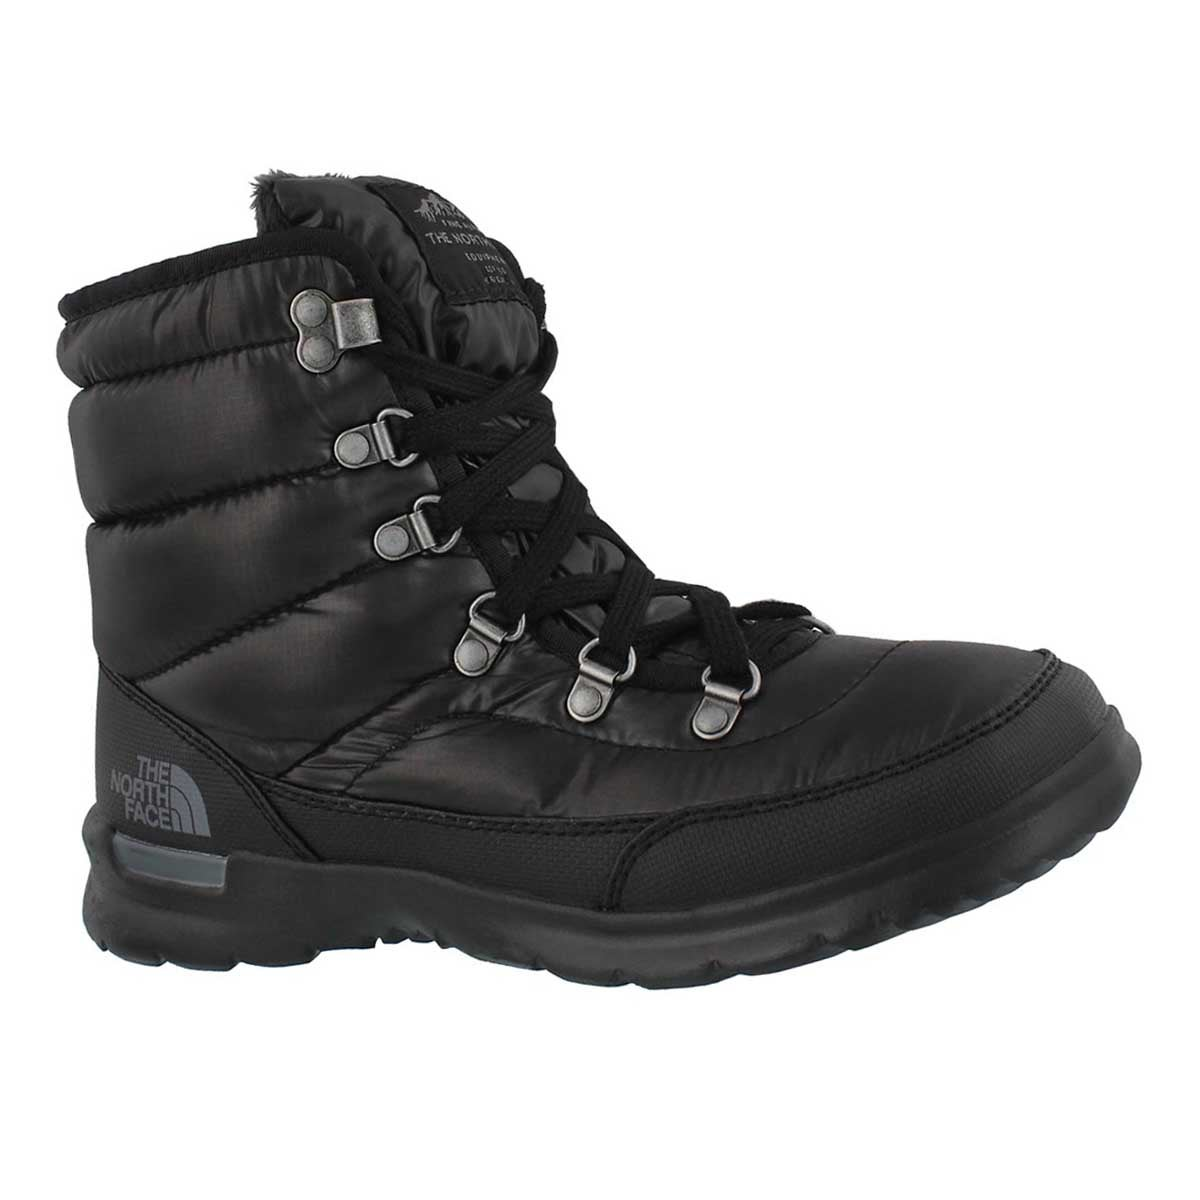 Lds ThermoBallLace II blk/gry wntr boot